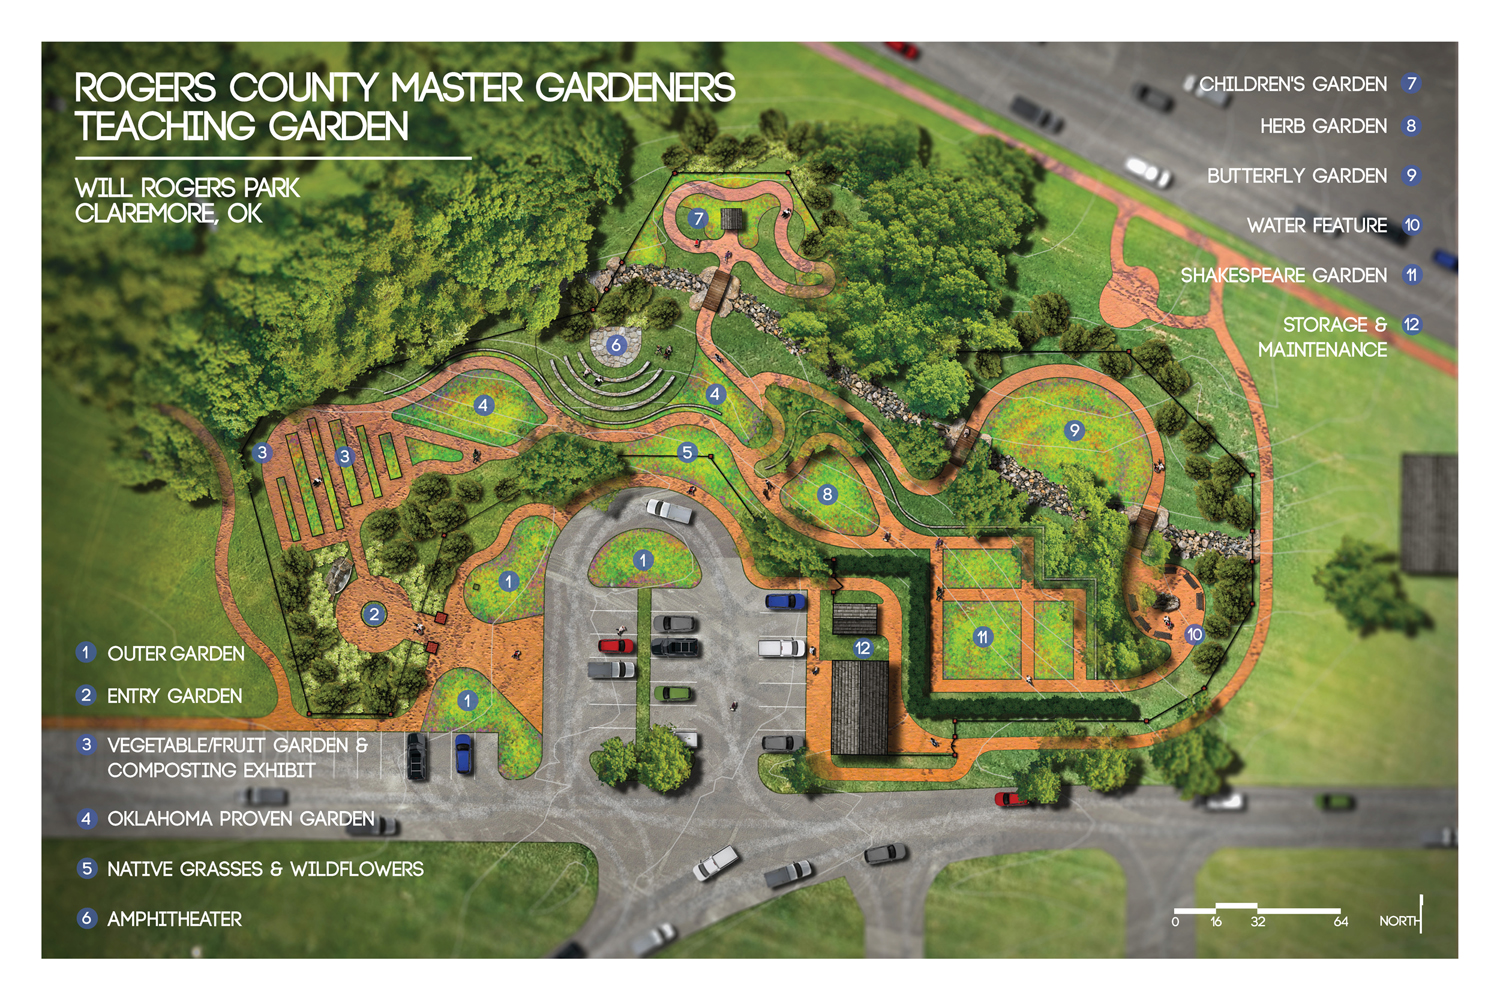 Superb Recent Renovations Include Dedicated Areas For Teaching And Demonstration  Gardens. Guided By This Master Plan (click On Image), The Gardens Will ...